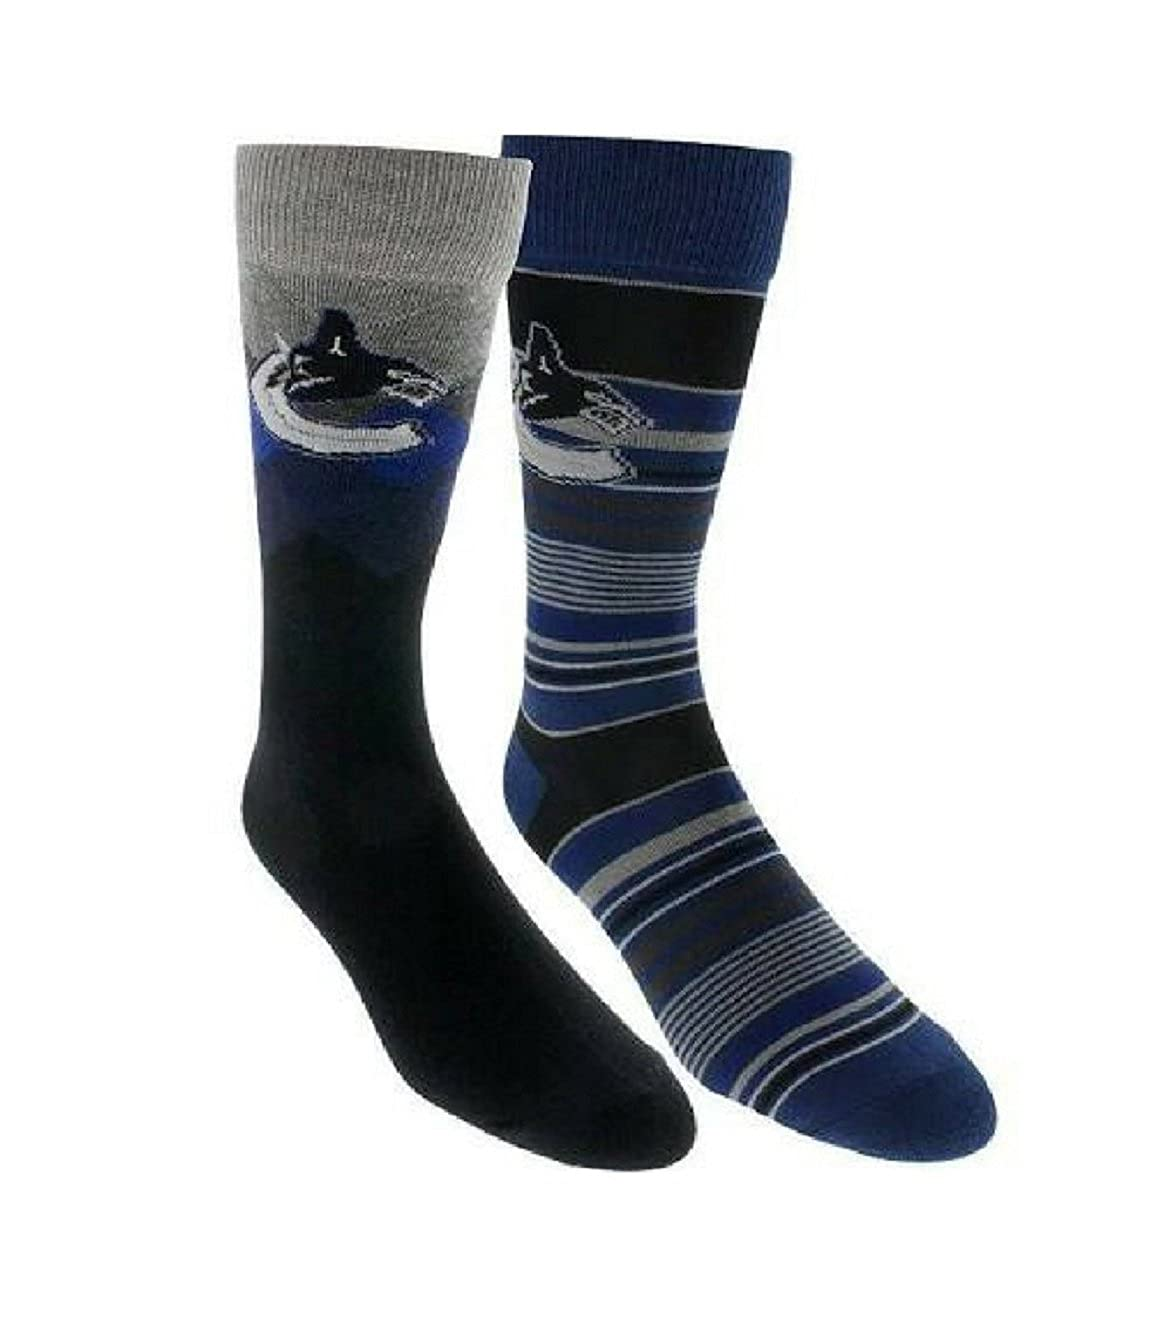 NHL Men's Vancouver Canucks 2-Pack Dress Socks Gertx